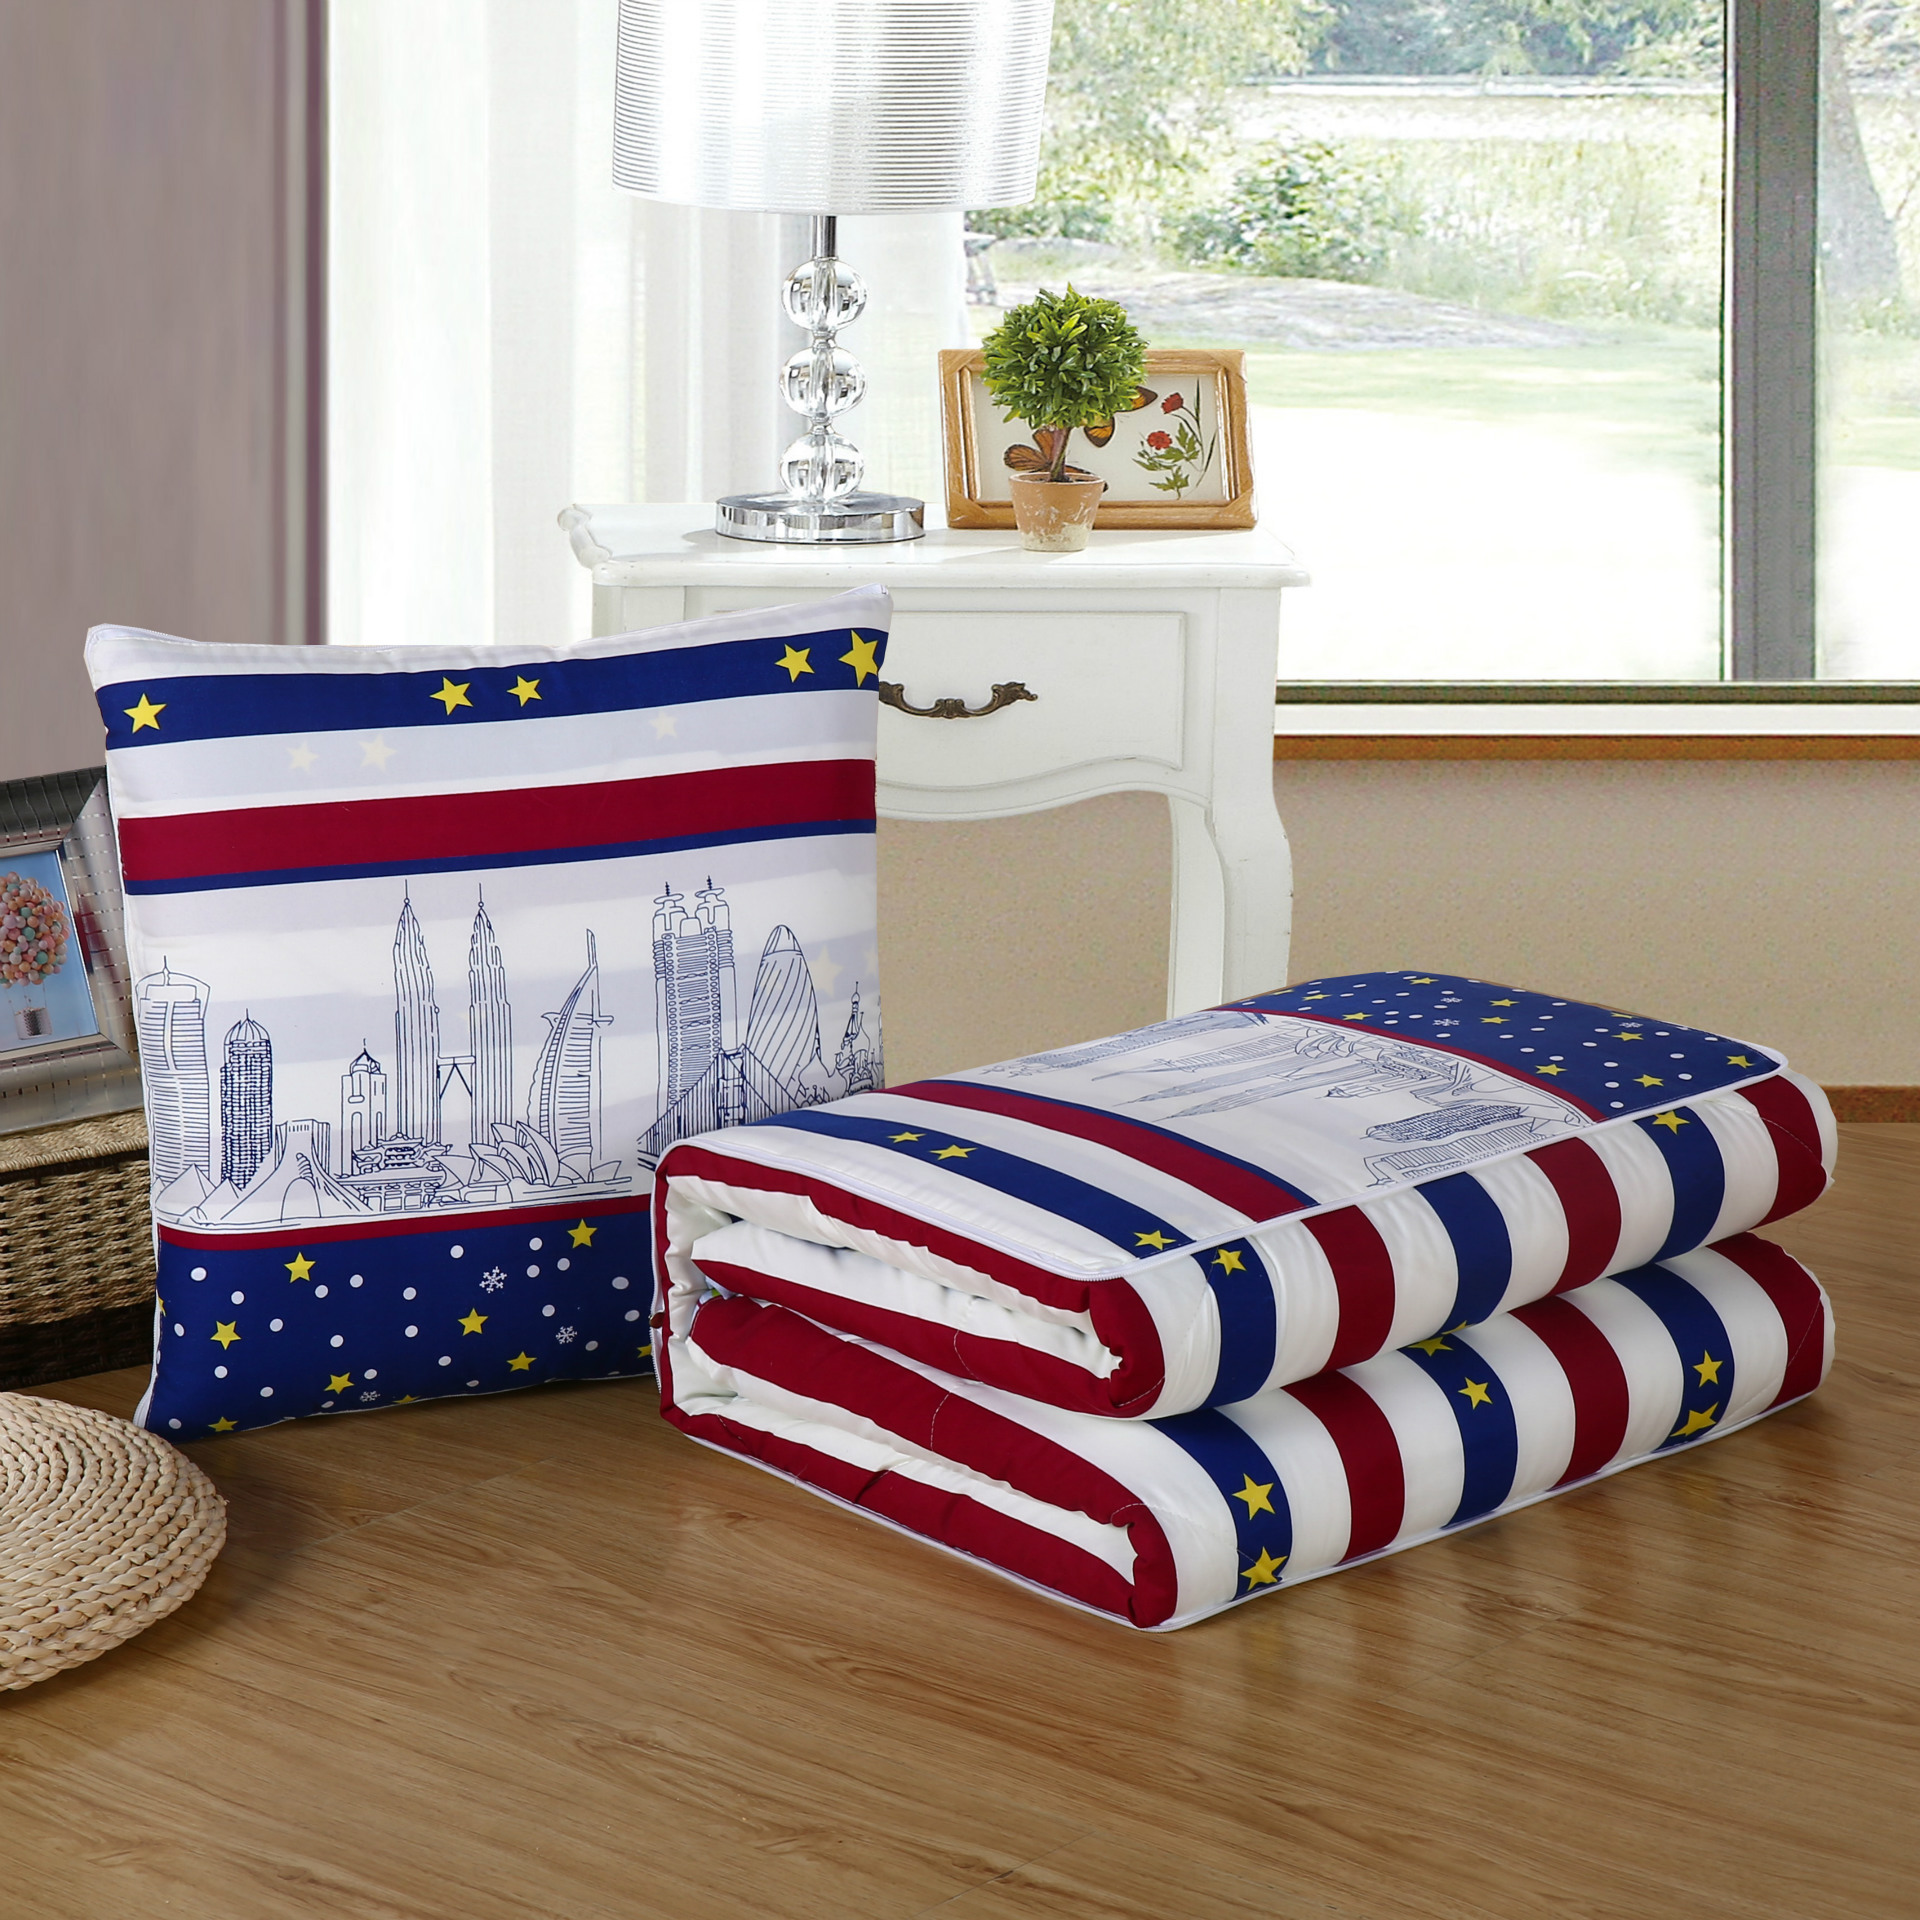 Dual Purpose Blanket and Pillow for Sleeping Quarters